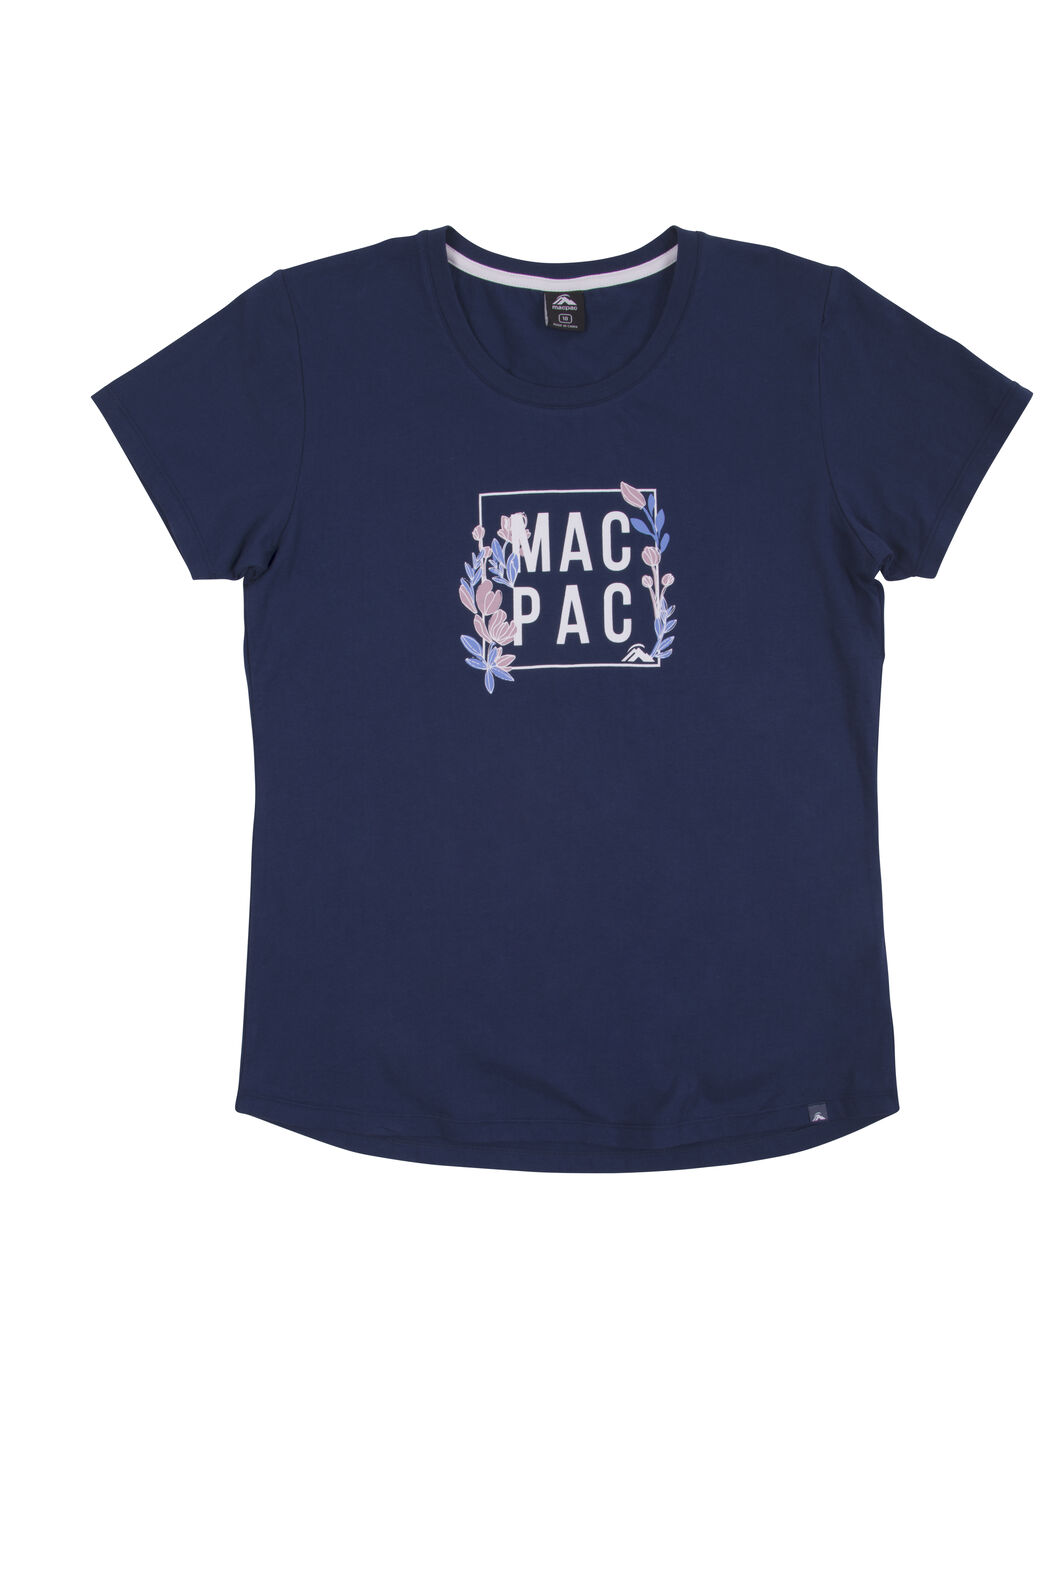 Macpac Cubed Organic Cotton Tee - Women's, Medieval Blue, hi-res